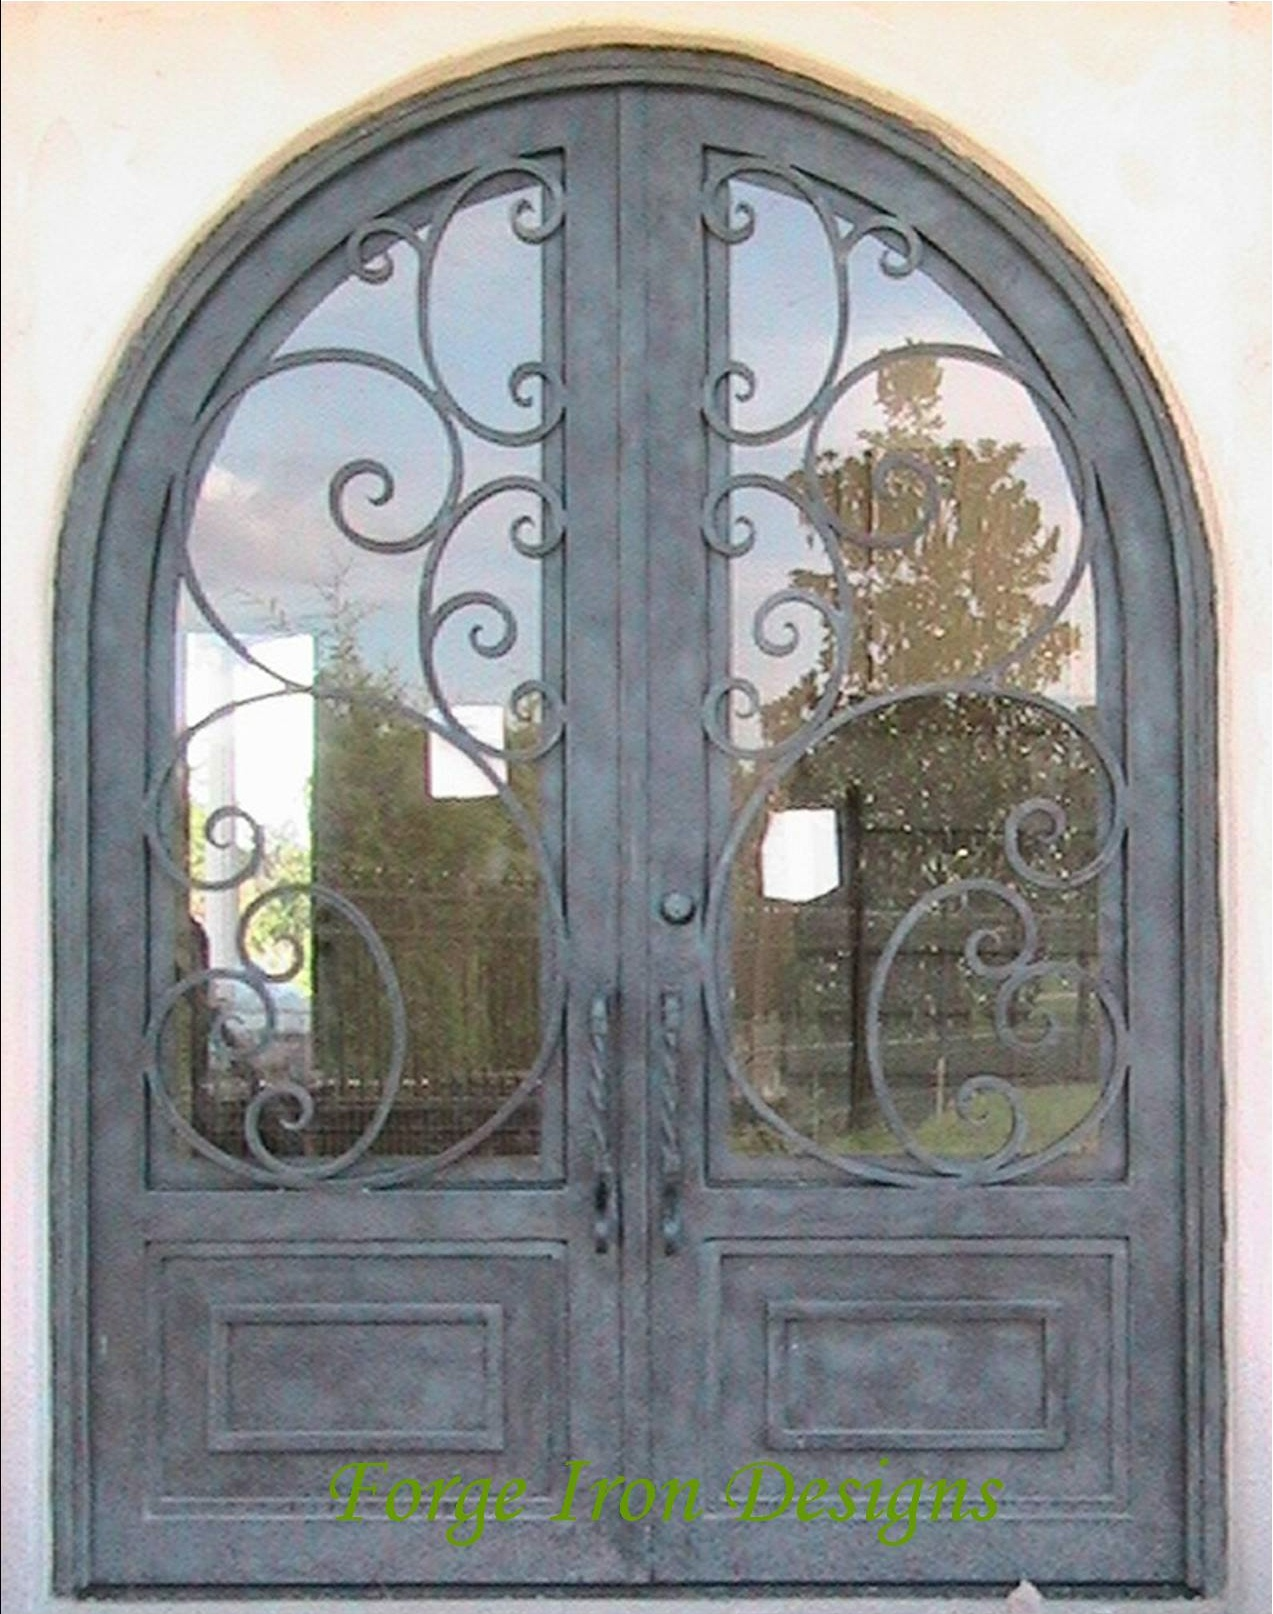 1614 #8B7240 Wrought Iron Doors Wine Cellar Doors Forge Iron Products AAW Wood  pic Wood Wrought Iron Doors 43111273